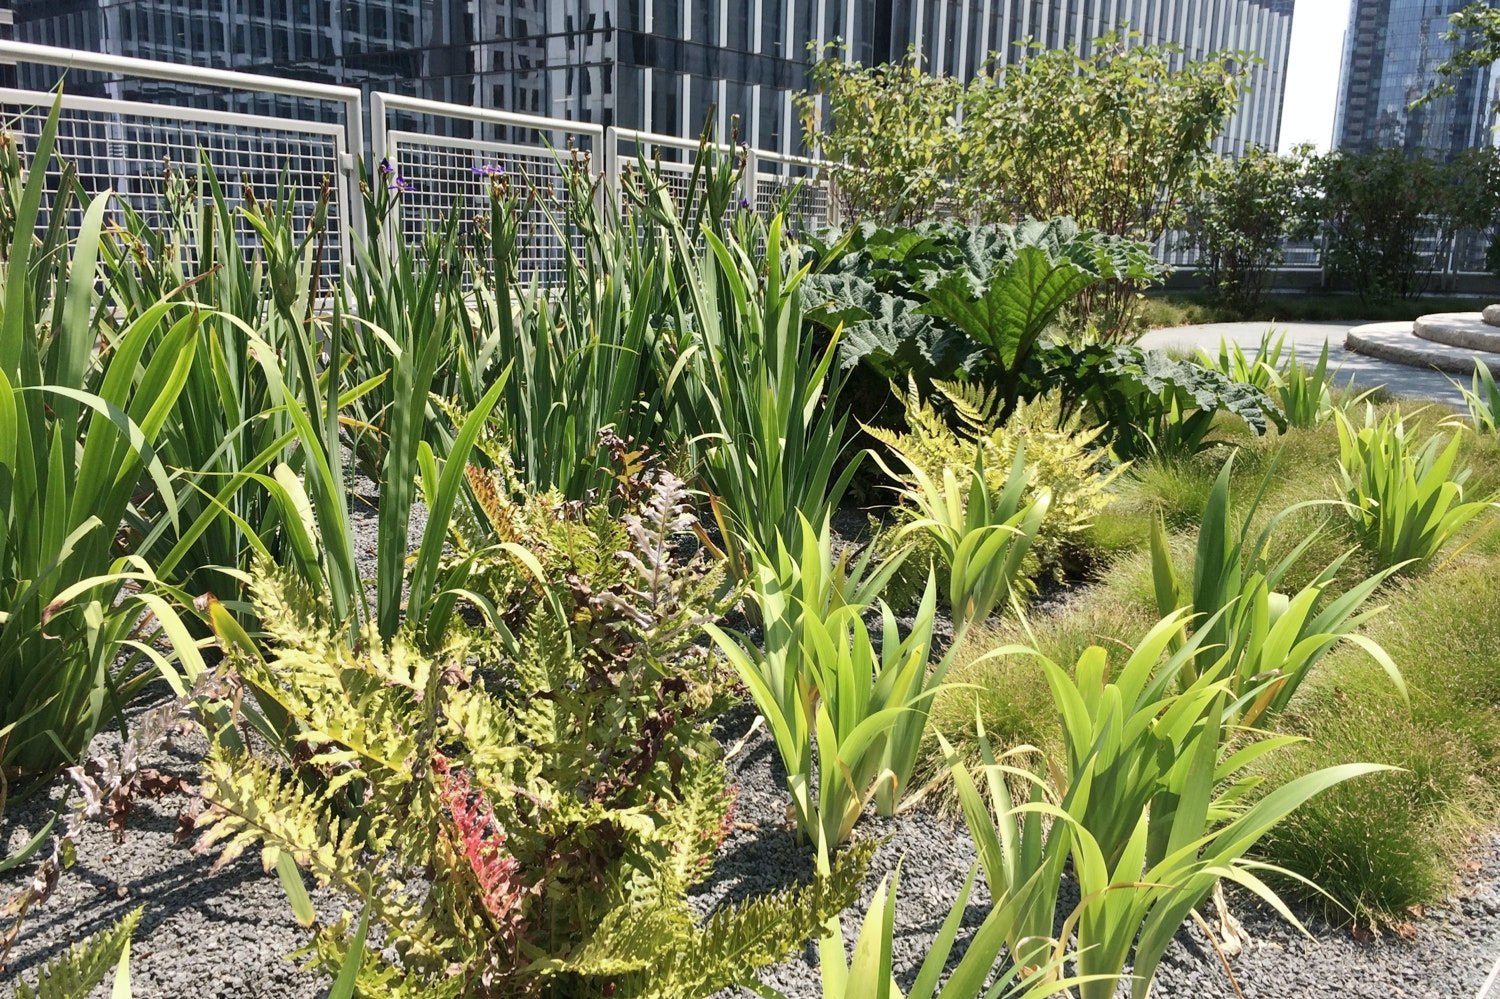 The Prehistoric Garden on the northeast end of Salesforce Park sits between the Mediterranean Basin and the Wetland Garden.